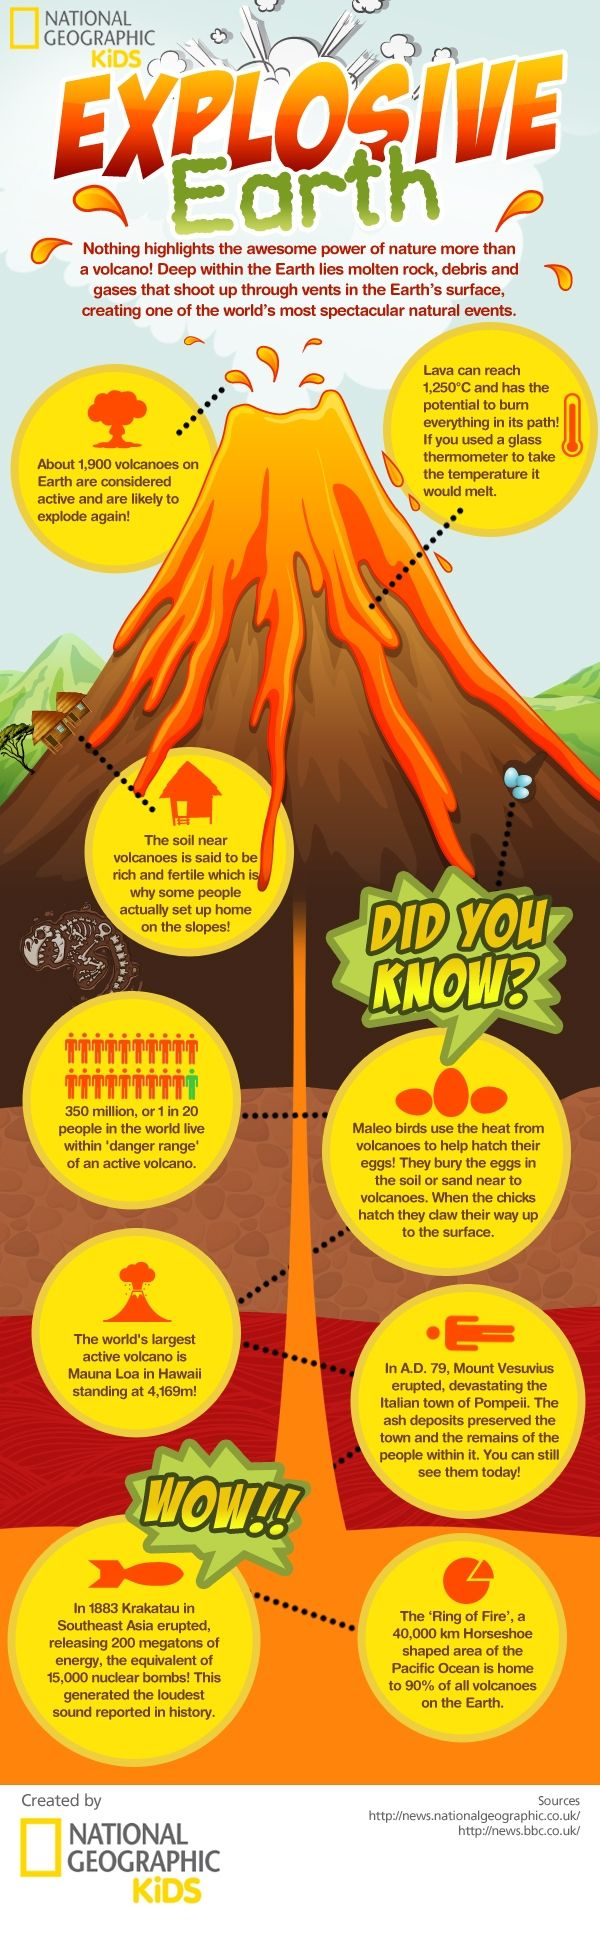 National Geographic Kids has brought to you a factual infographic with fun facts and a cool design to enable your kids to interact and learn. More facts are based at ngkids.co.uk!